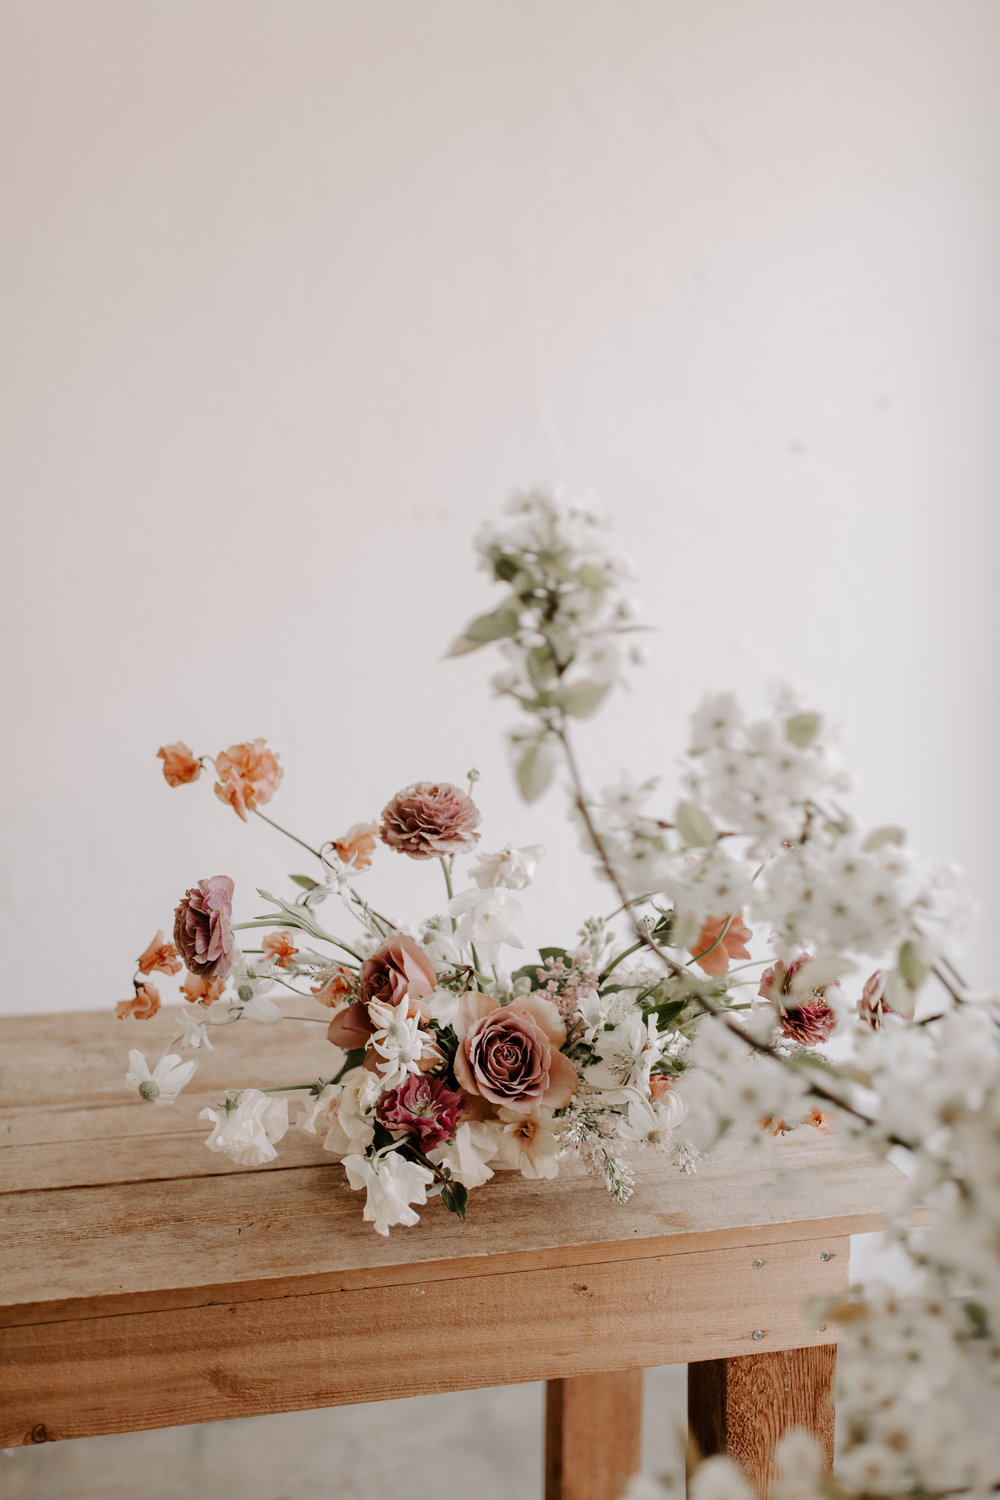 Creative floral arrangement - eversomething.com